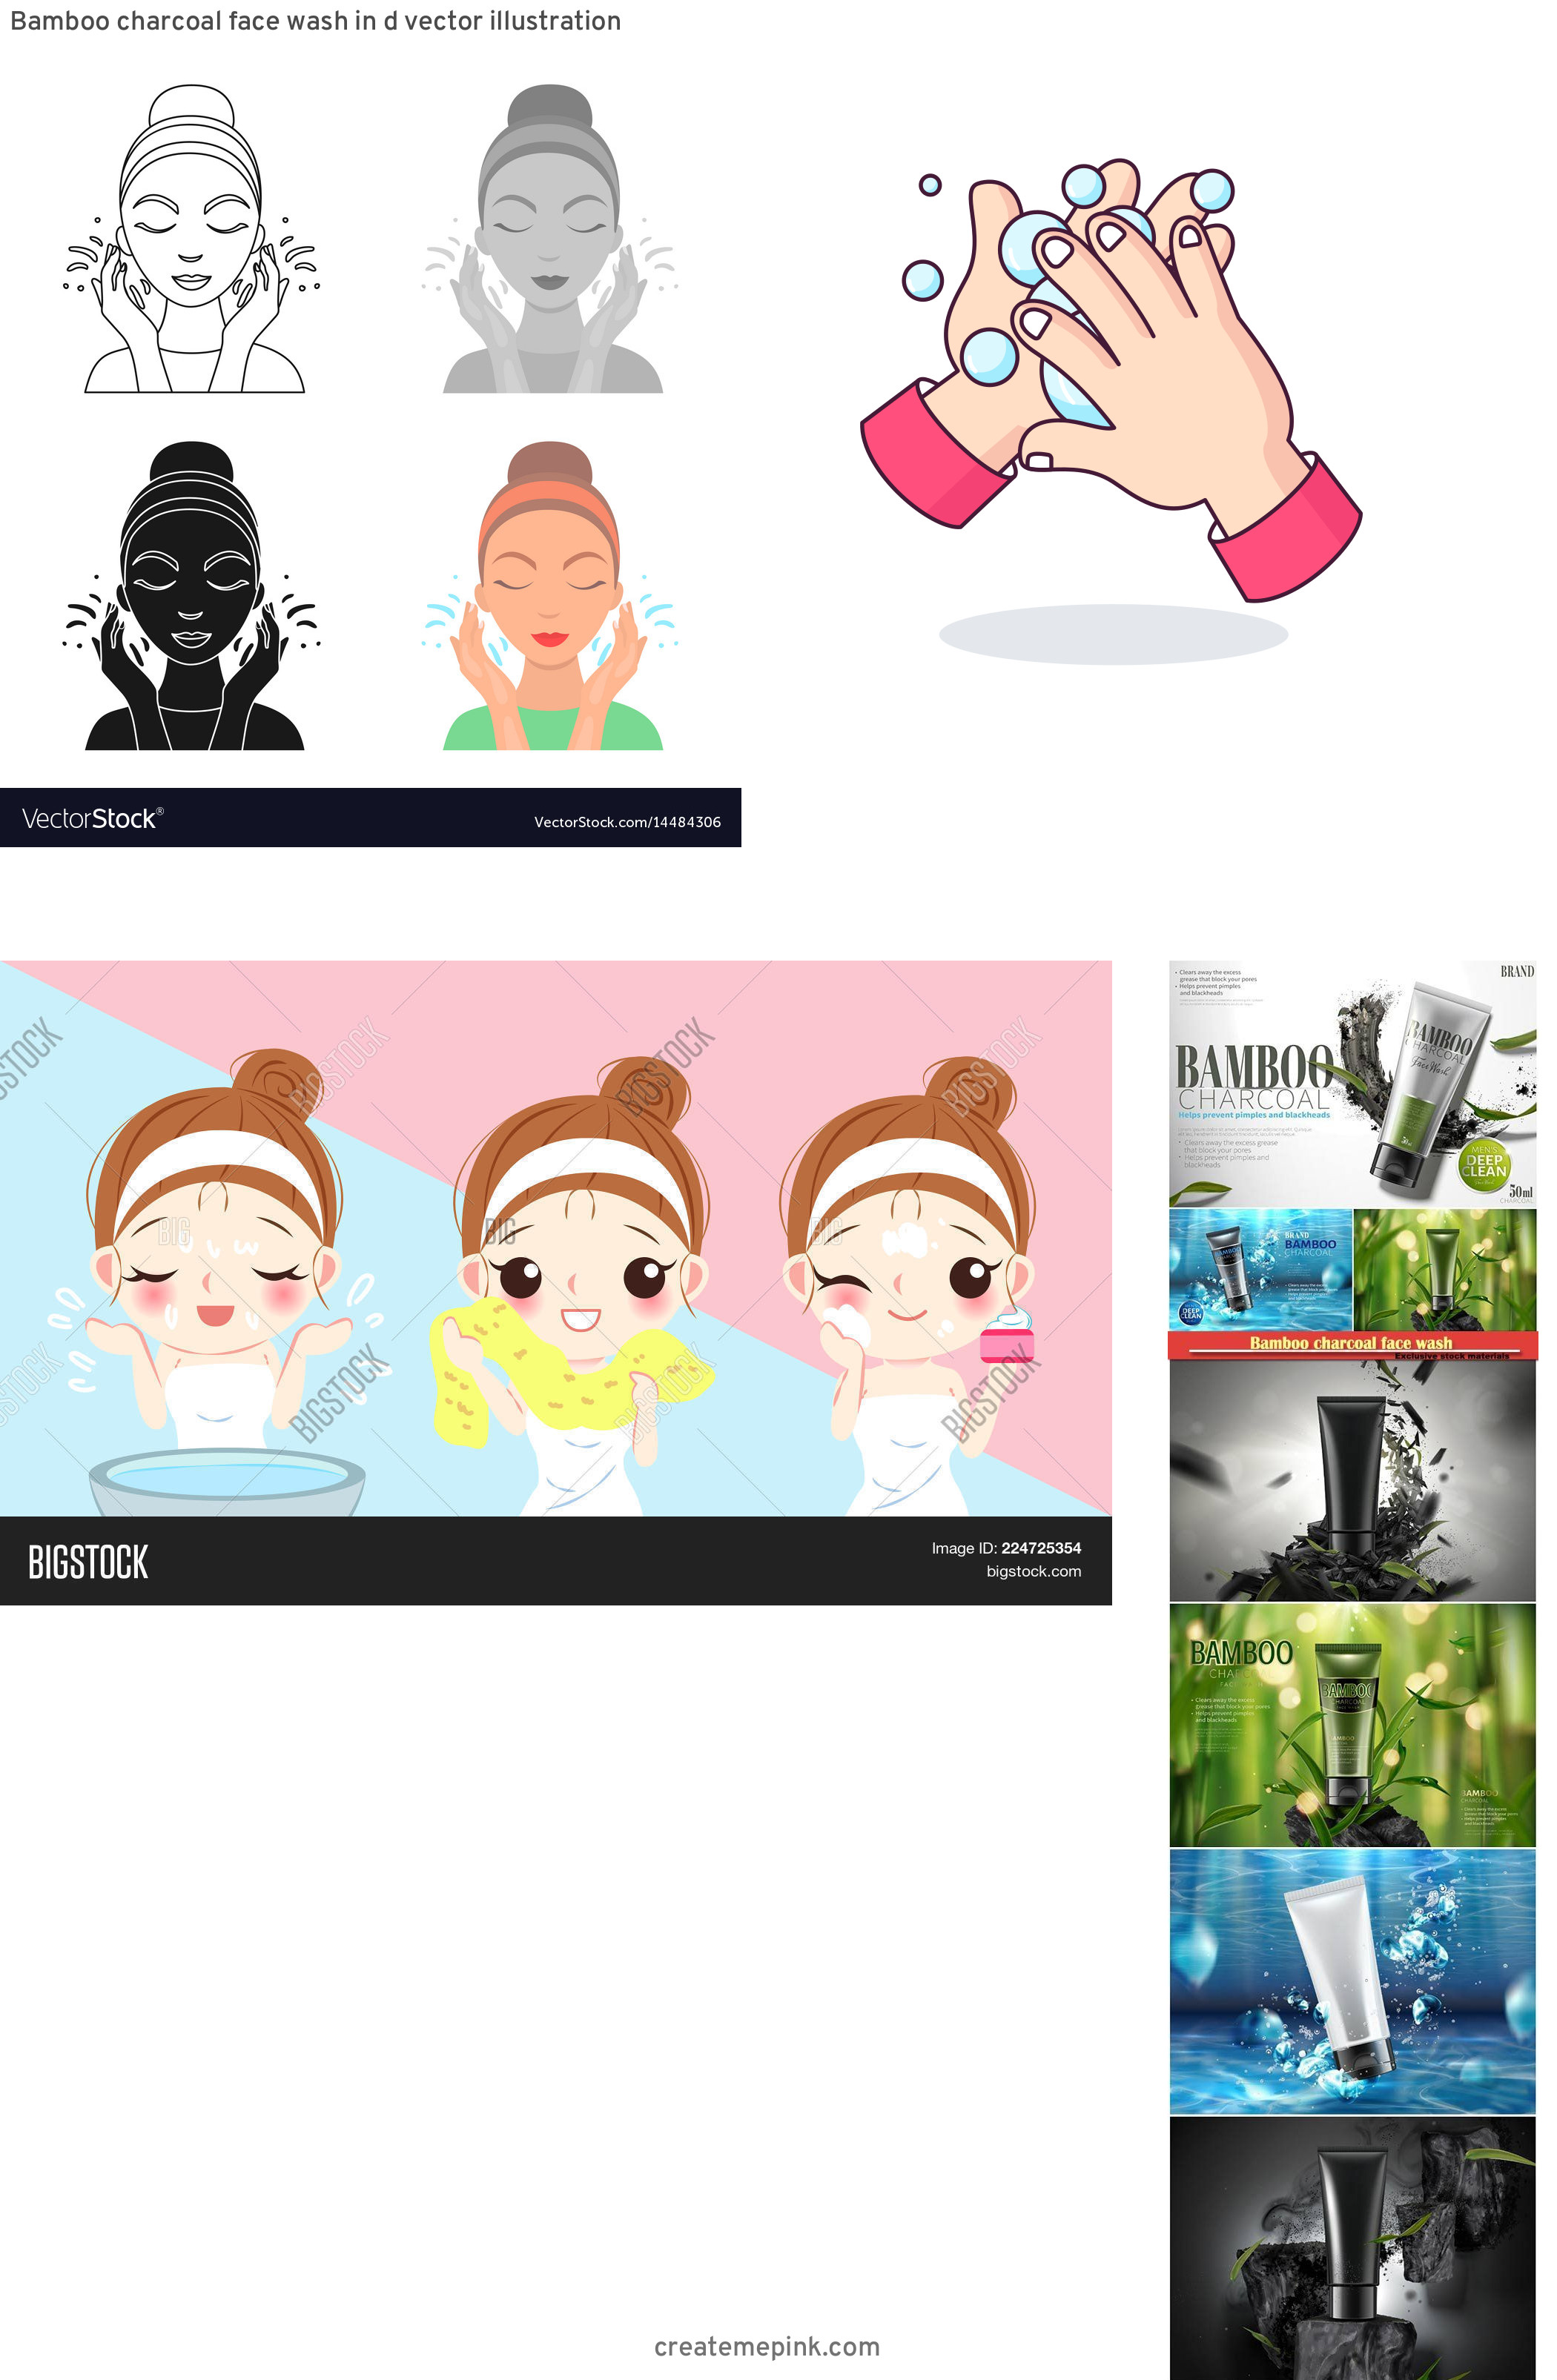 Vector Face Wash: Bamboo Charcoal Face Wash In D Vector Illustration